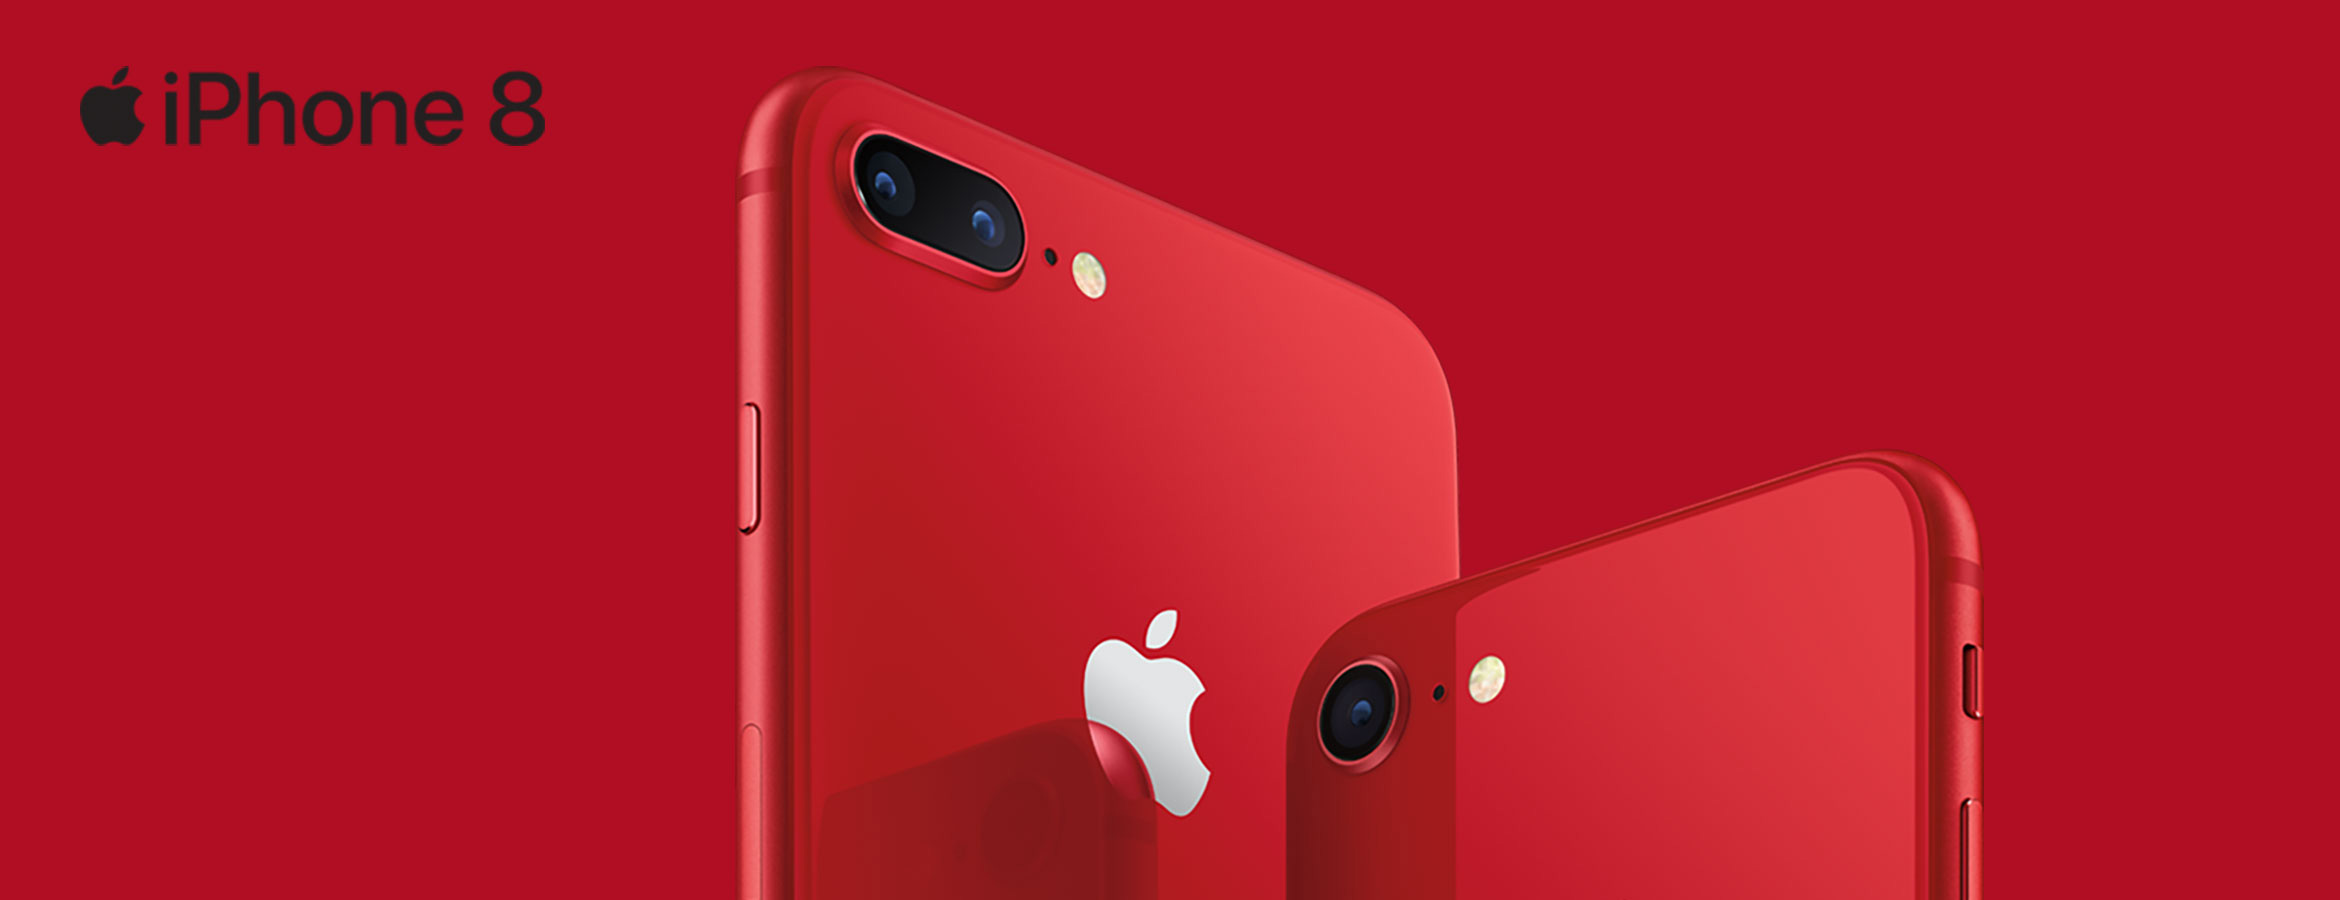 iPhone_8_ProductRED1